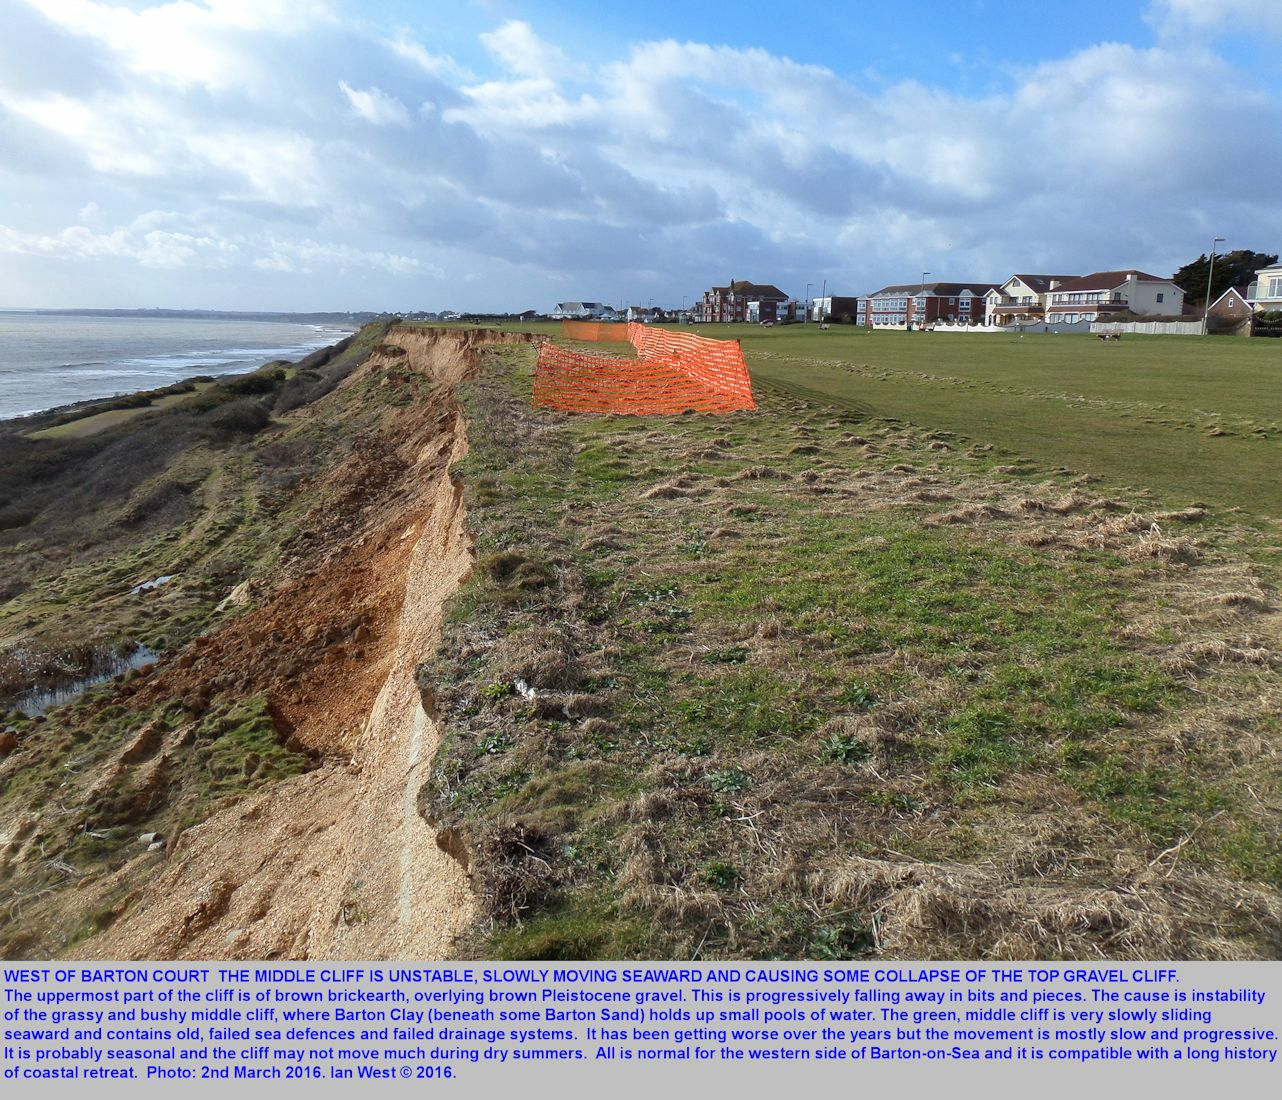 A view looking west of the unstable, but only slowly moving landslide between the old Sea Road Access and Hoskin's Gap, Barton-on-Sea, Hampshire, 21 January 2016